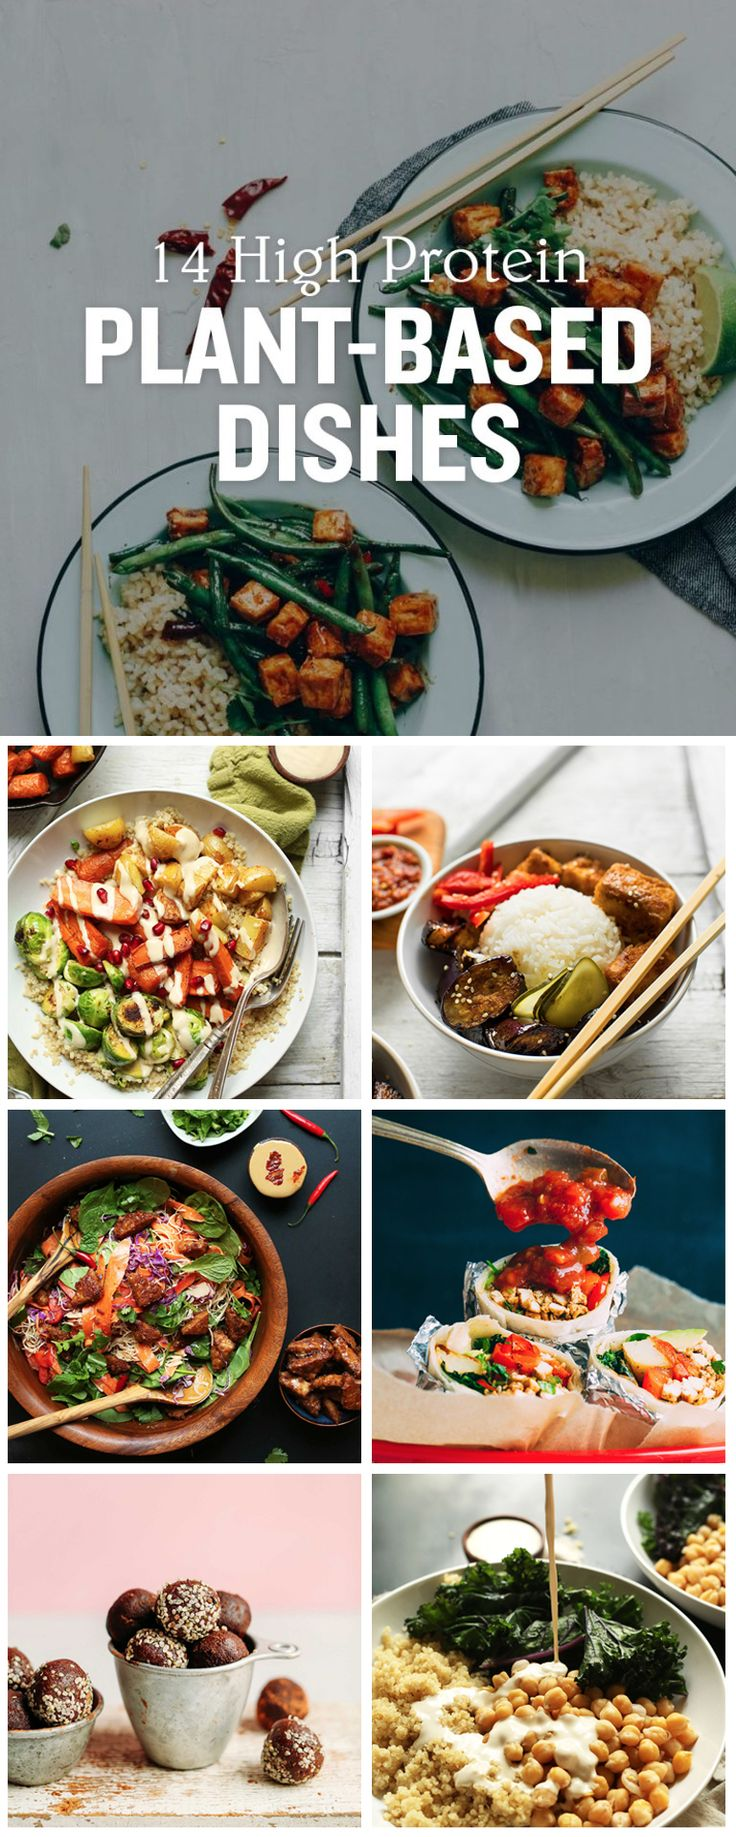 We've rounded up 14 High Protein Plant-Based Dishes that cover every meal of the day, along with some snack options to keep you feeling full when the 3pm cravings hit.